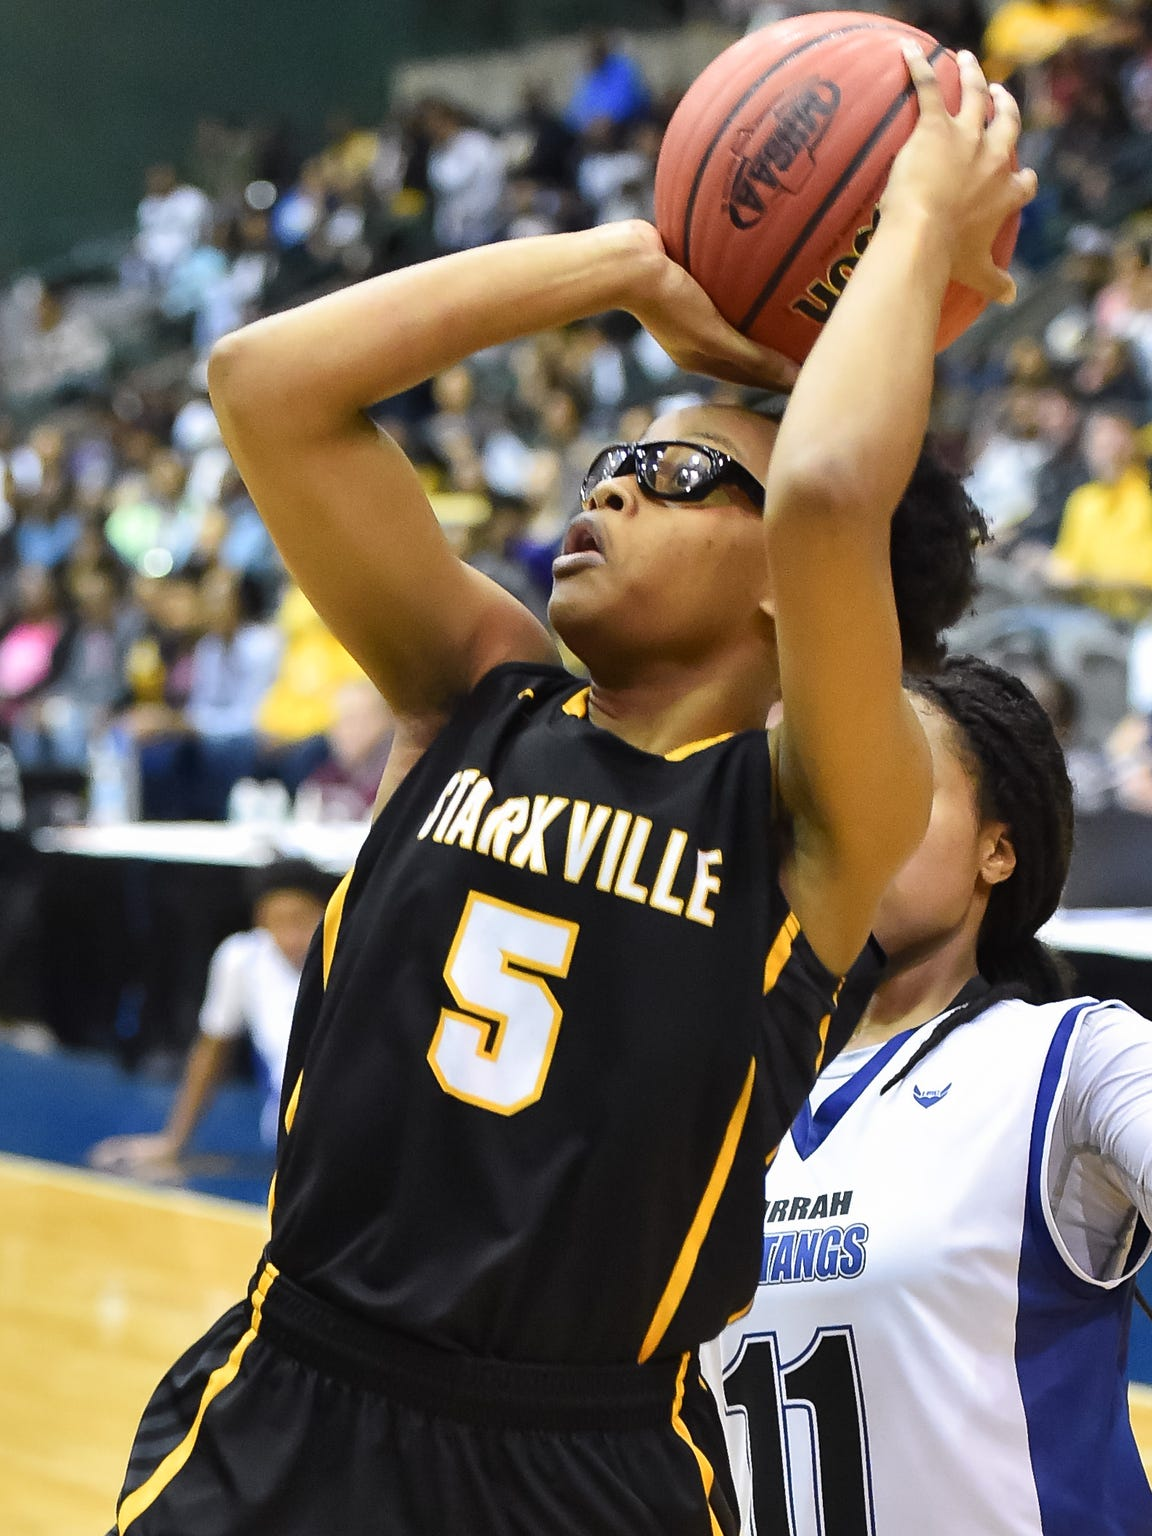 Starkville's Jalisa Outlaw shoots against Murrah during the MHSAA Girls' 6A Championship Game held at The Coliseum in Jackson MS.(Photo/Bob Smith)